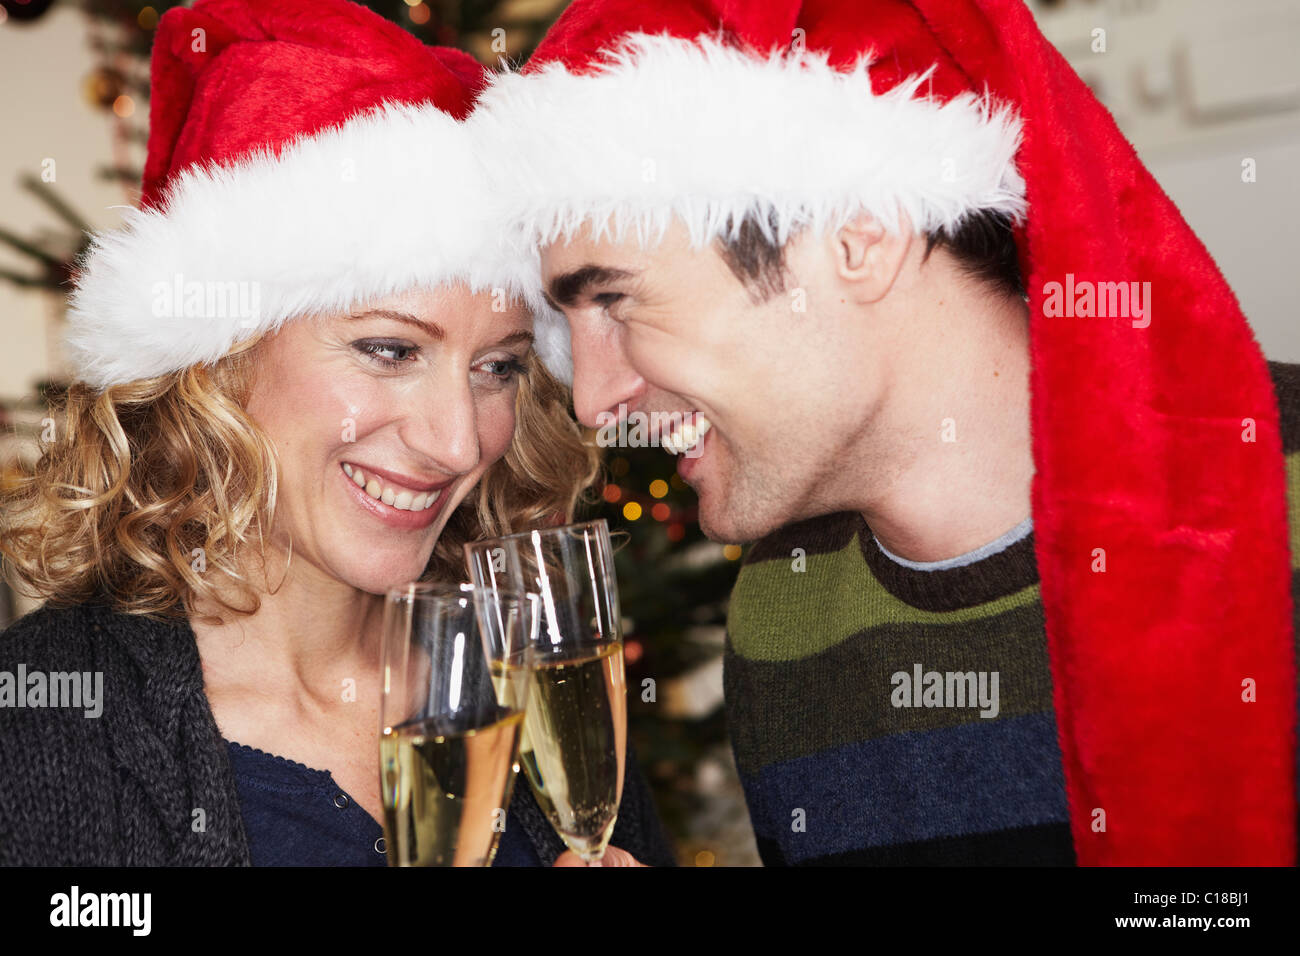 Couple with xmas caps clinking glasses - Stock Image